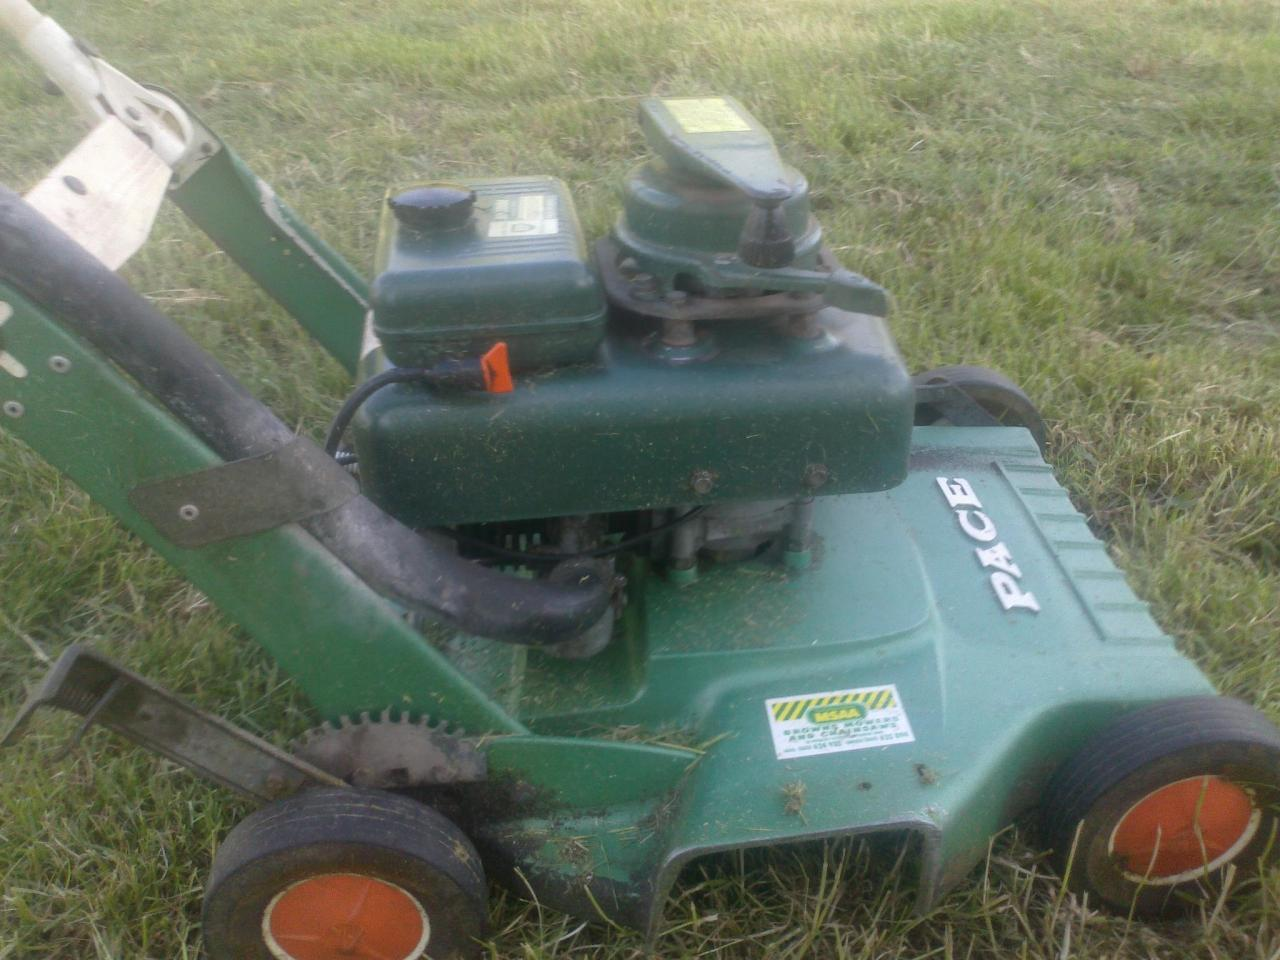 victa pace special manual outdoorking repair forum Sears Craftsman Riding Lawn Mower Murray Lawn Mowers